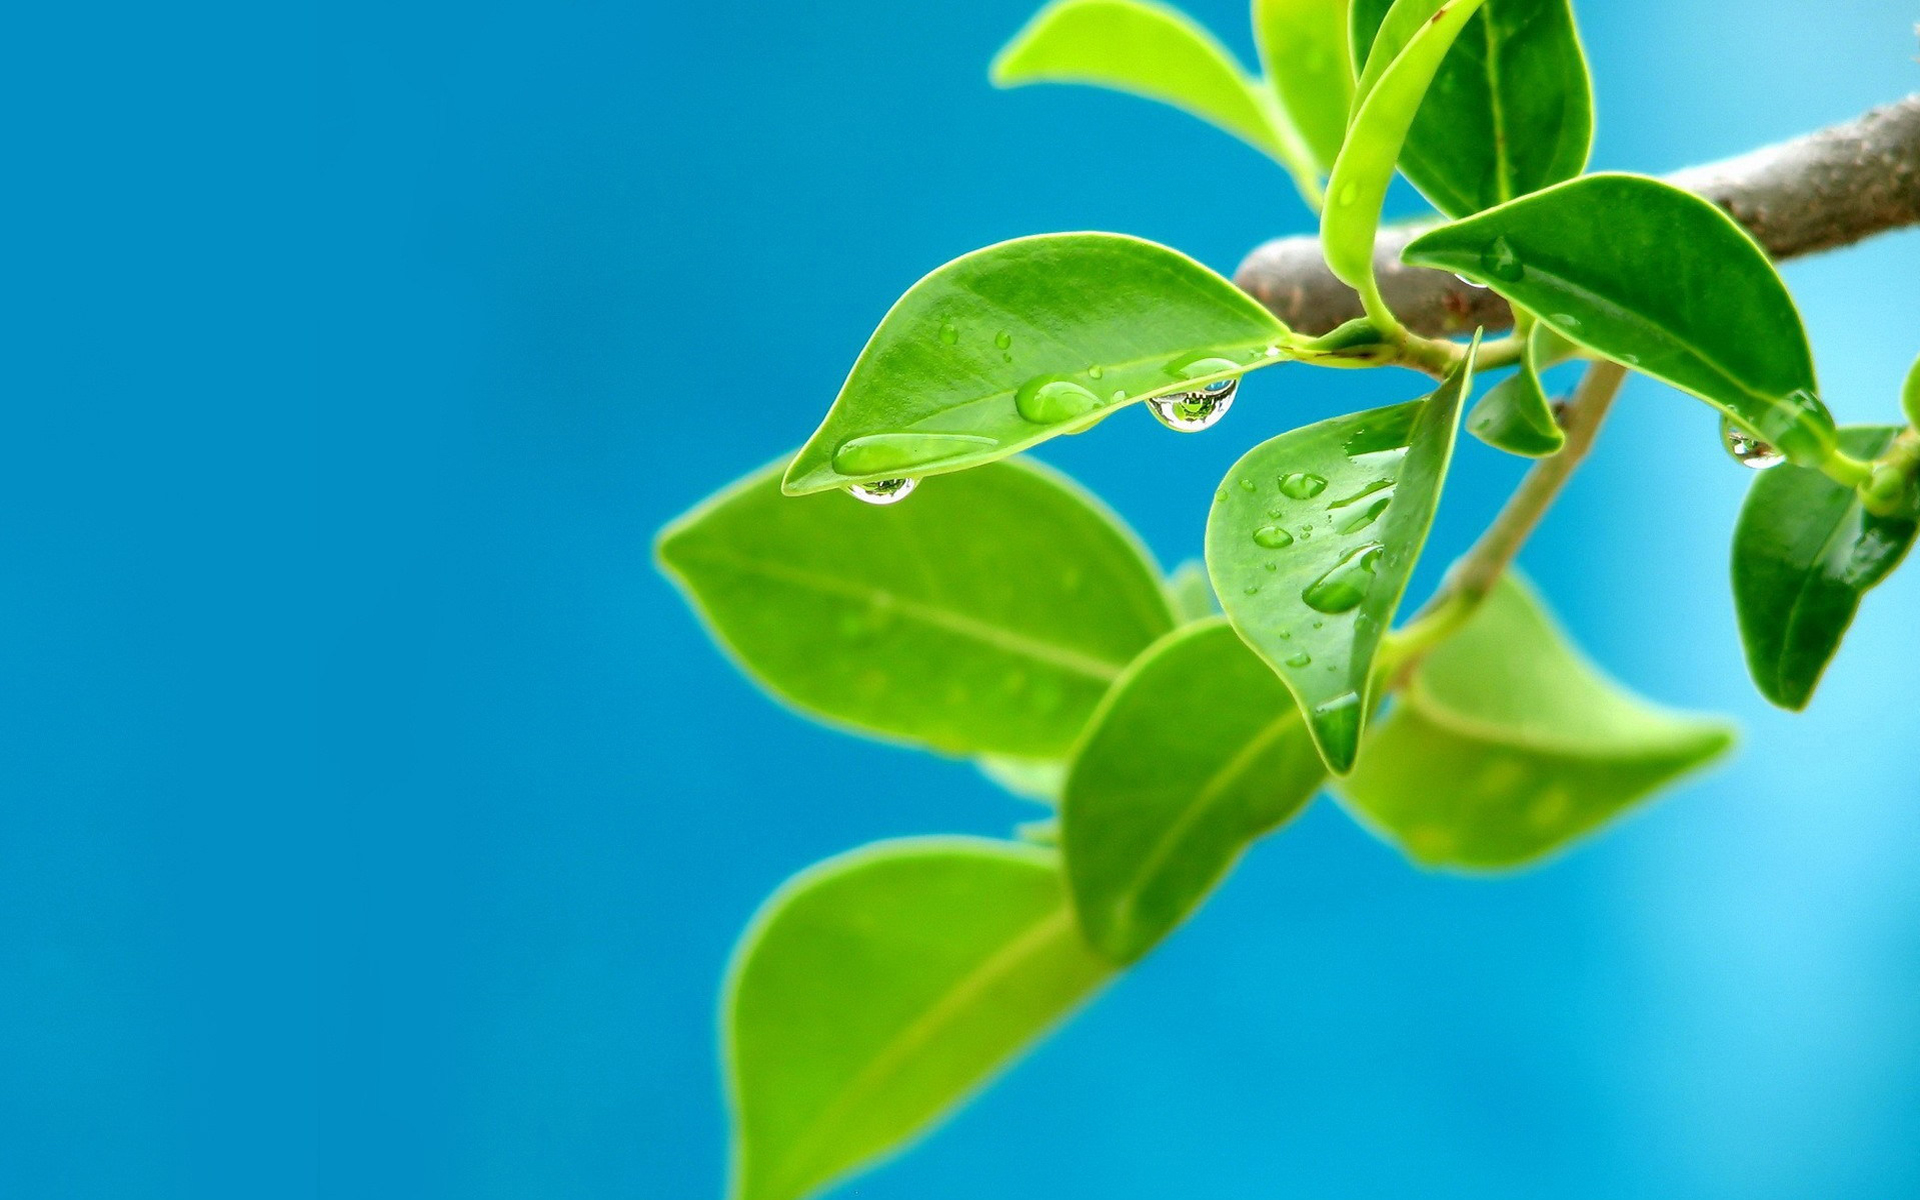 Water drops on leaves wallpapers | Water drops on leaves ...